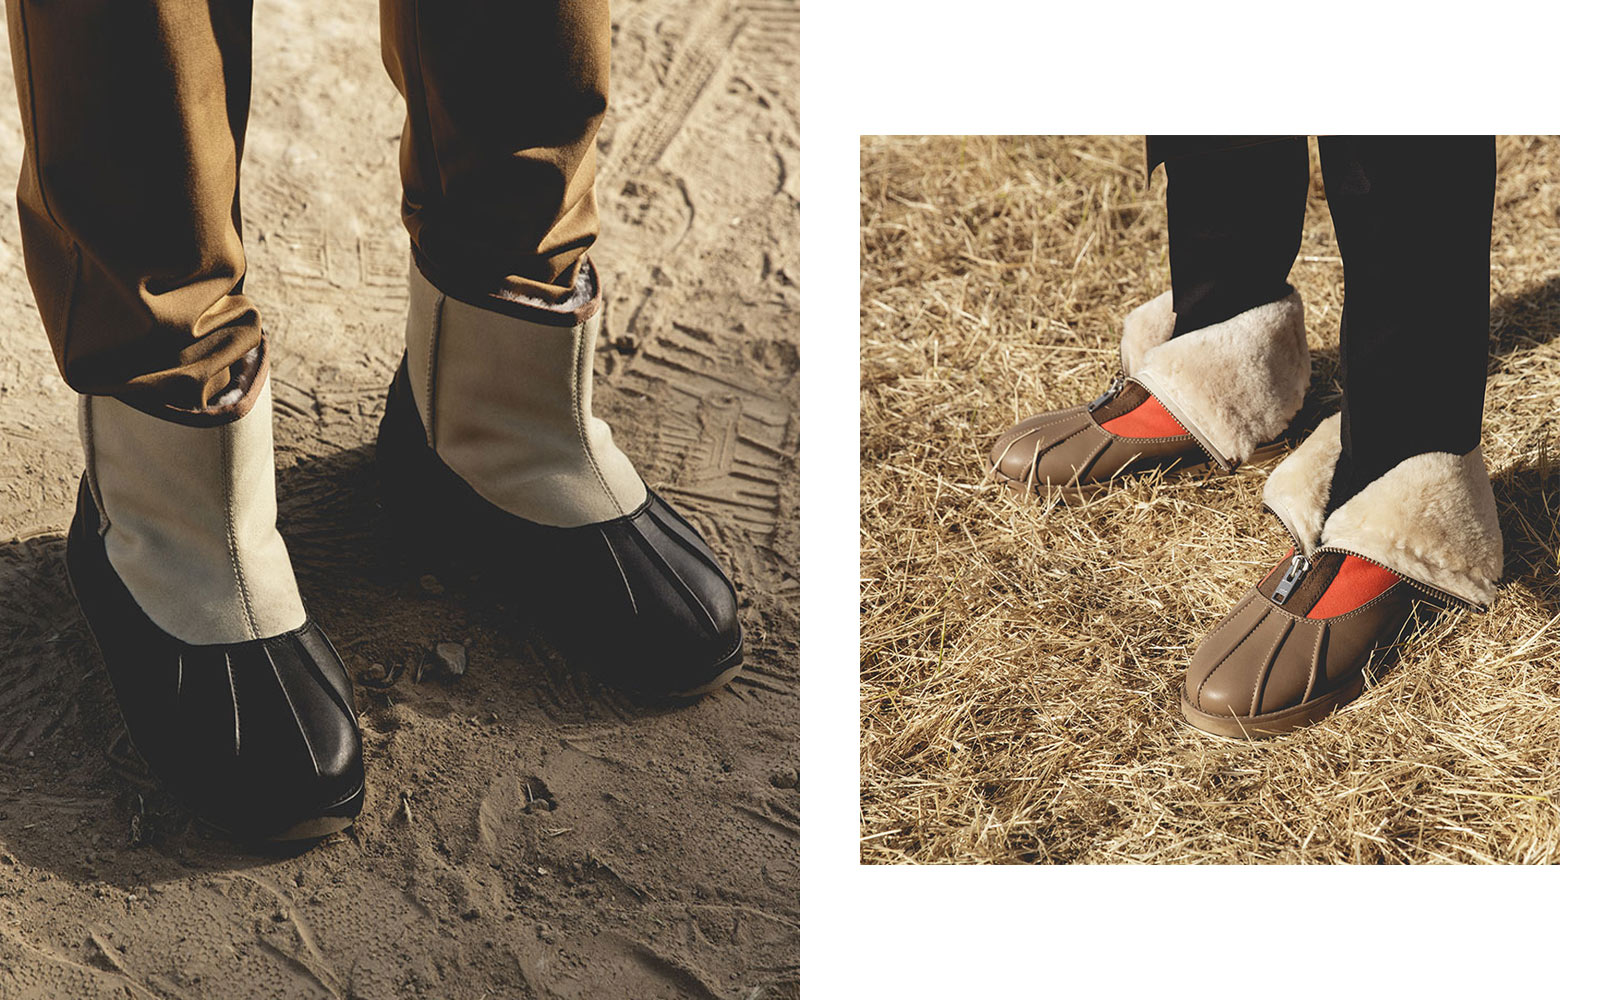 Phillip Lim Just Made UGGs Cool Again